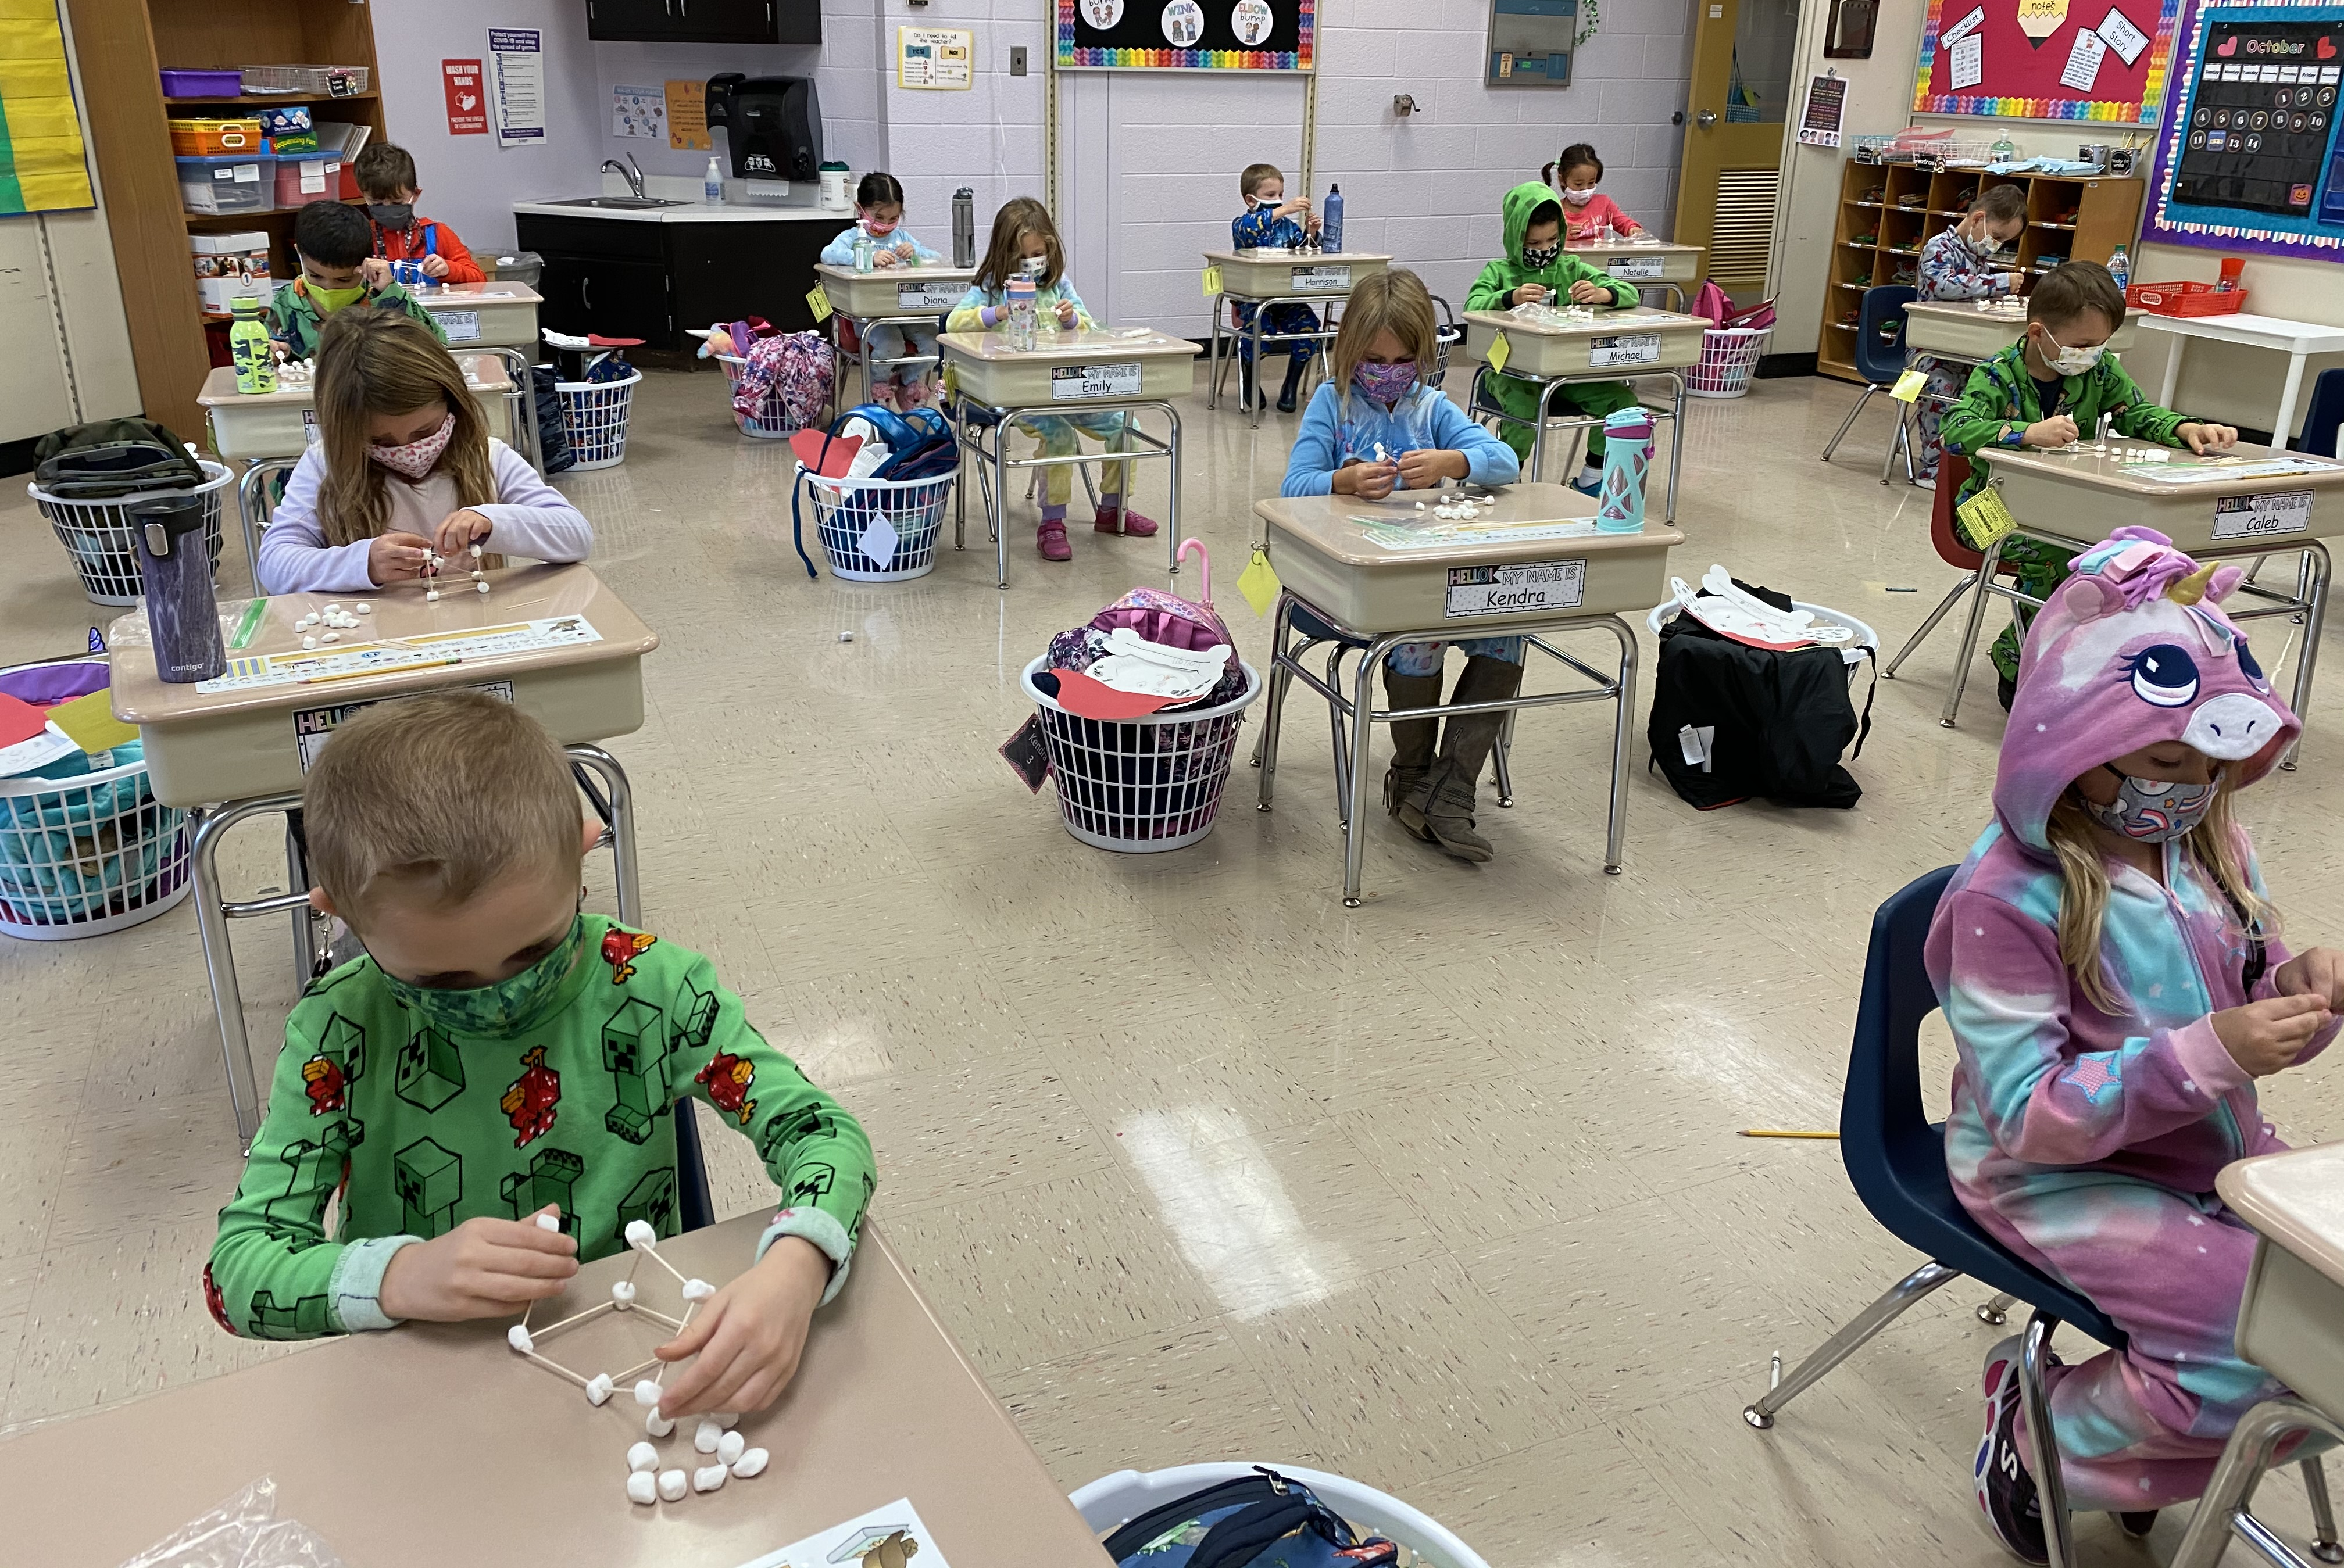 Mrs. Girard's first grade class at Okte has a pajama day and utilizes engineering skills after listening to a story to build a pumpkin tower for the farmer using toothpicks and marshmallows.